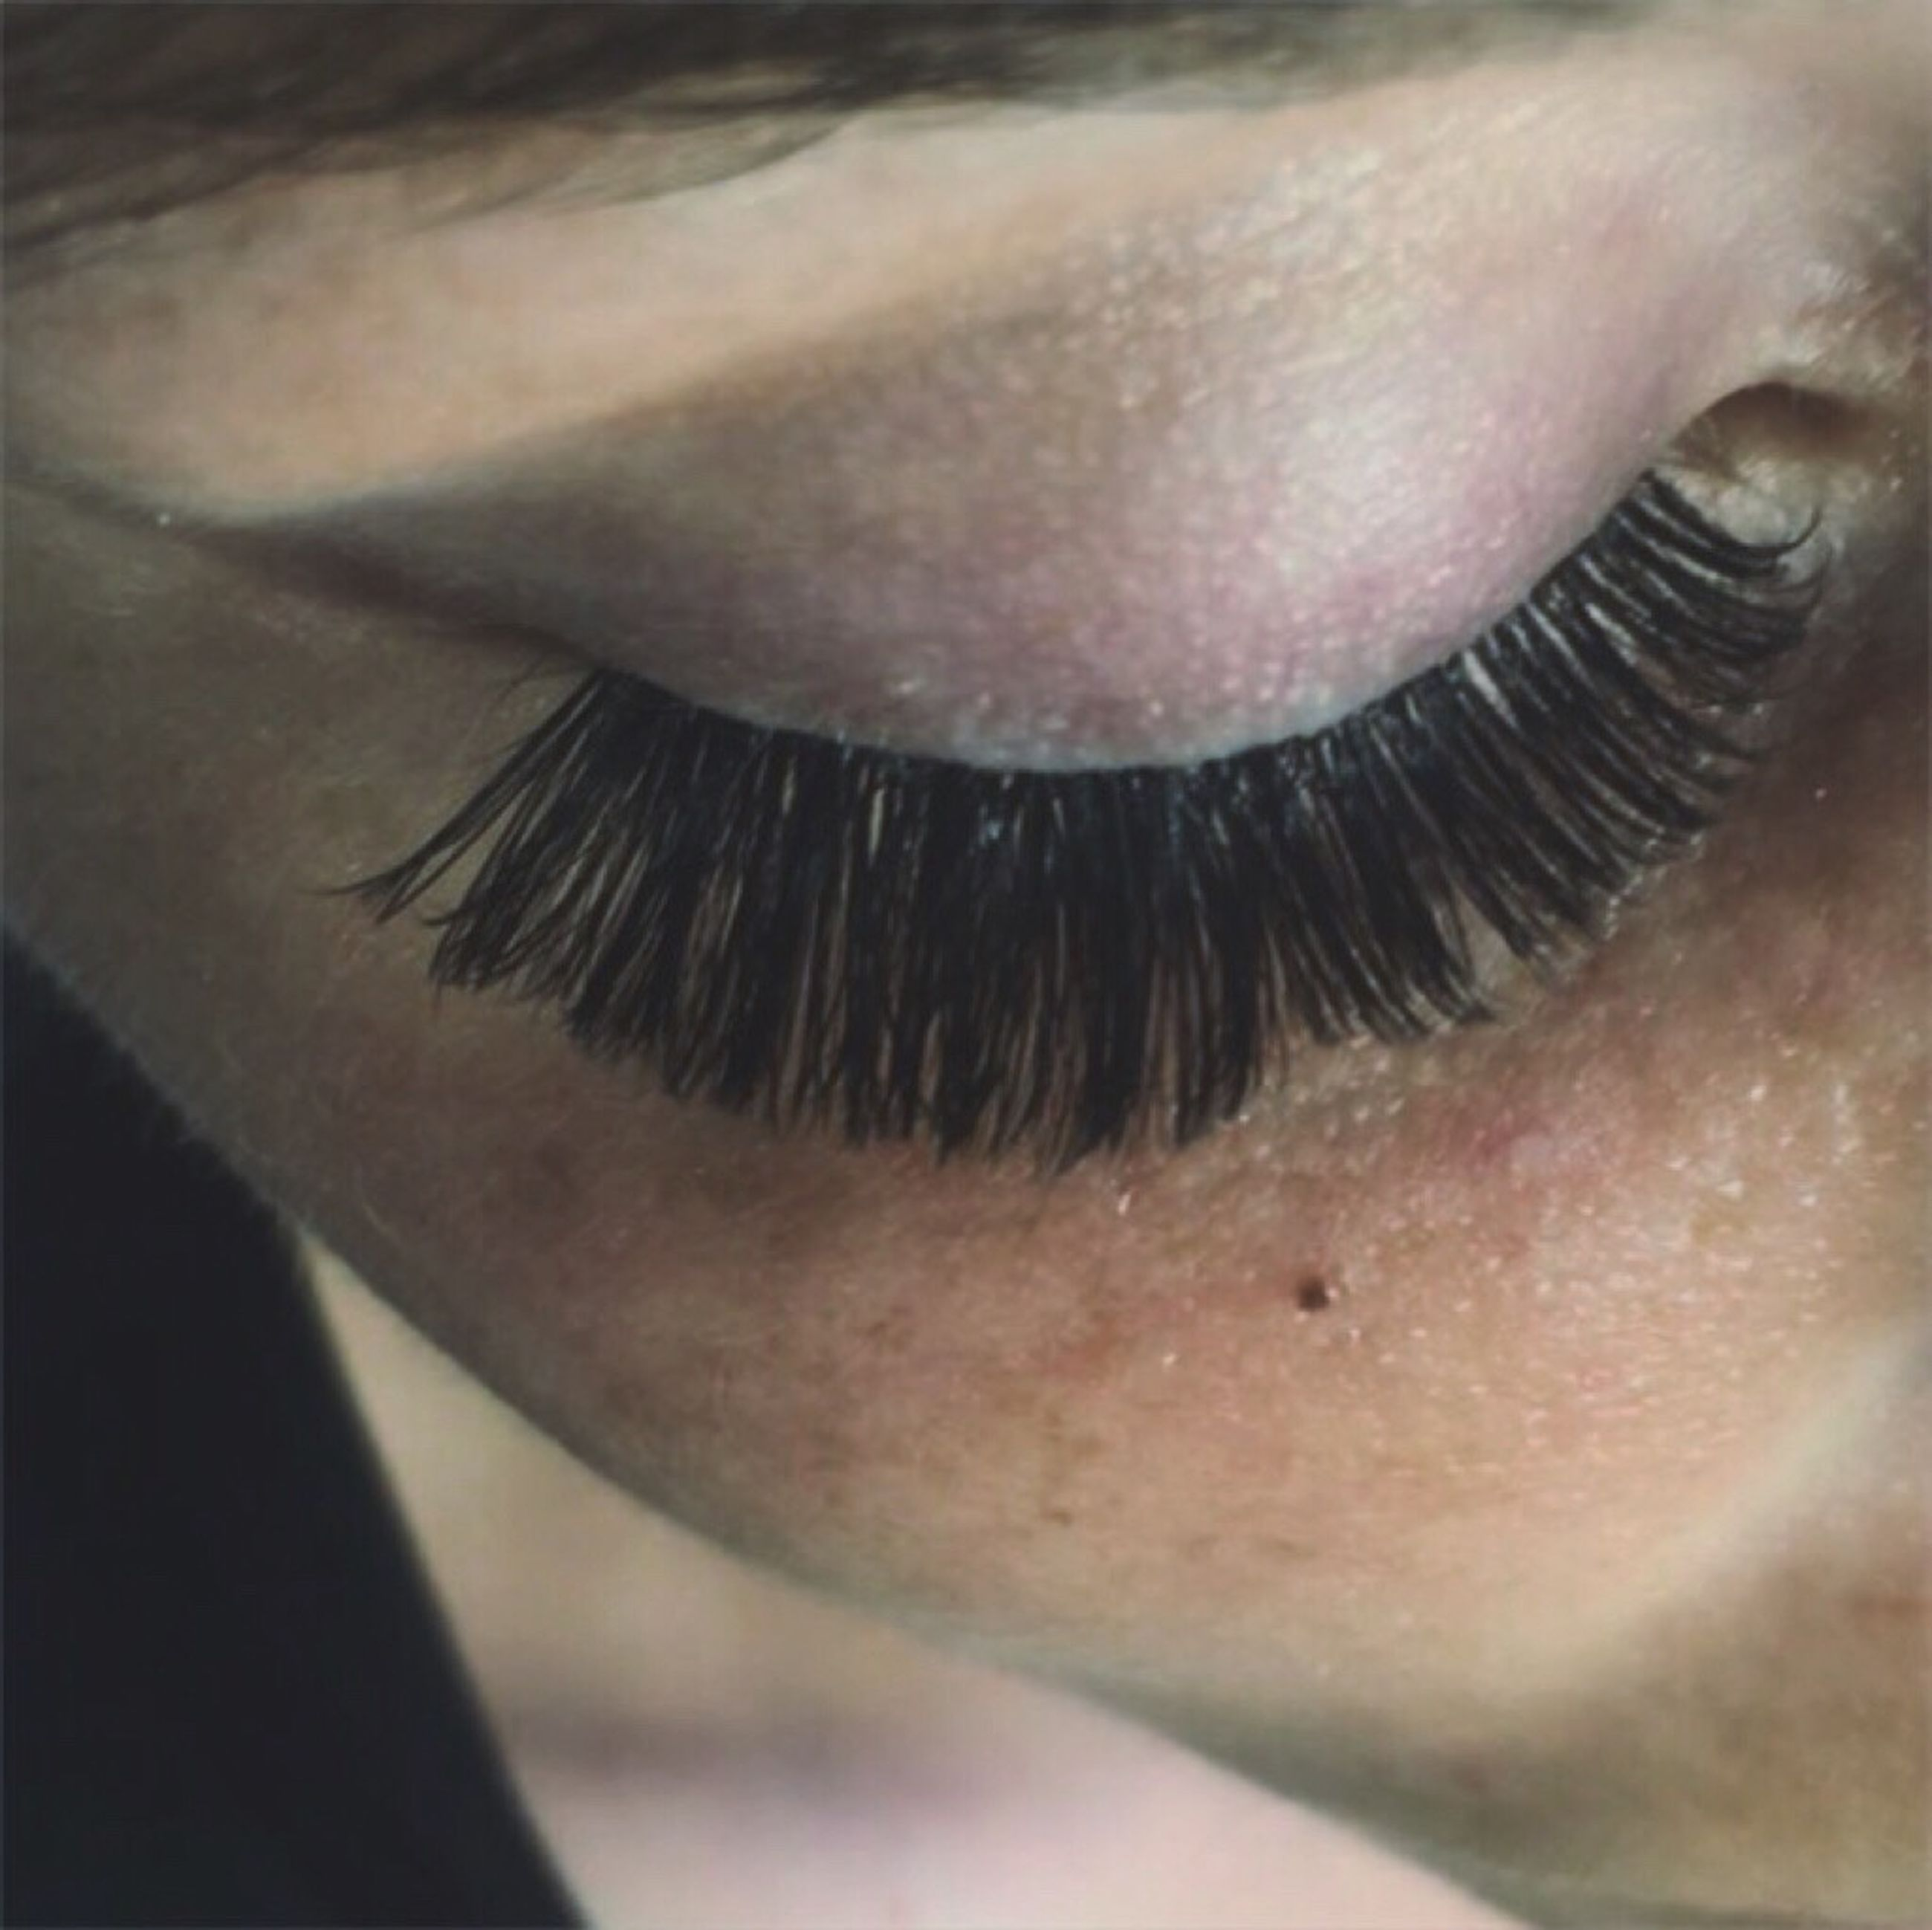 human body part, close-up, one person, real people, indoors, eyelash, human eye, people, adult, day, adults only